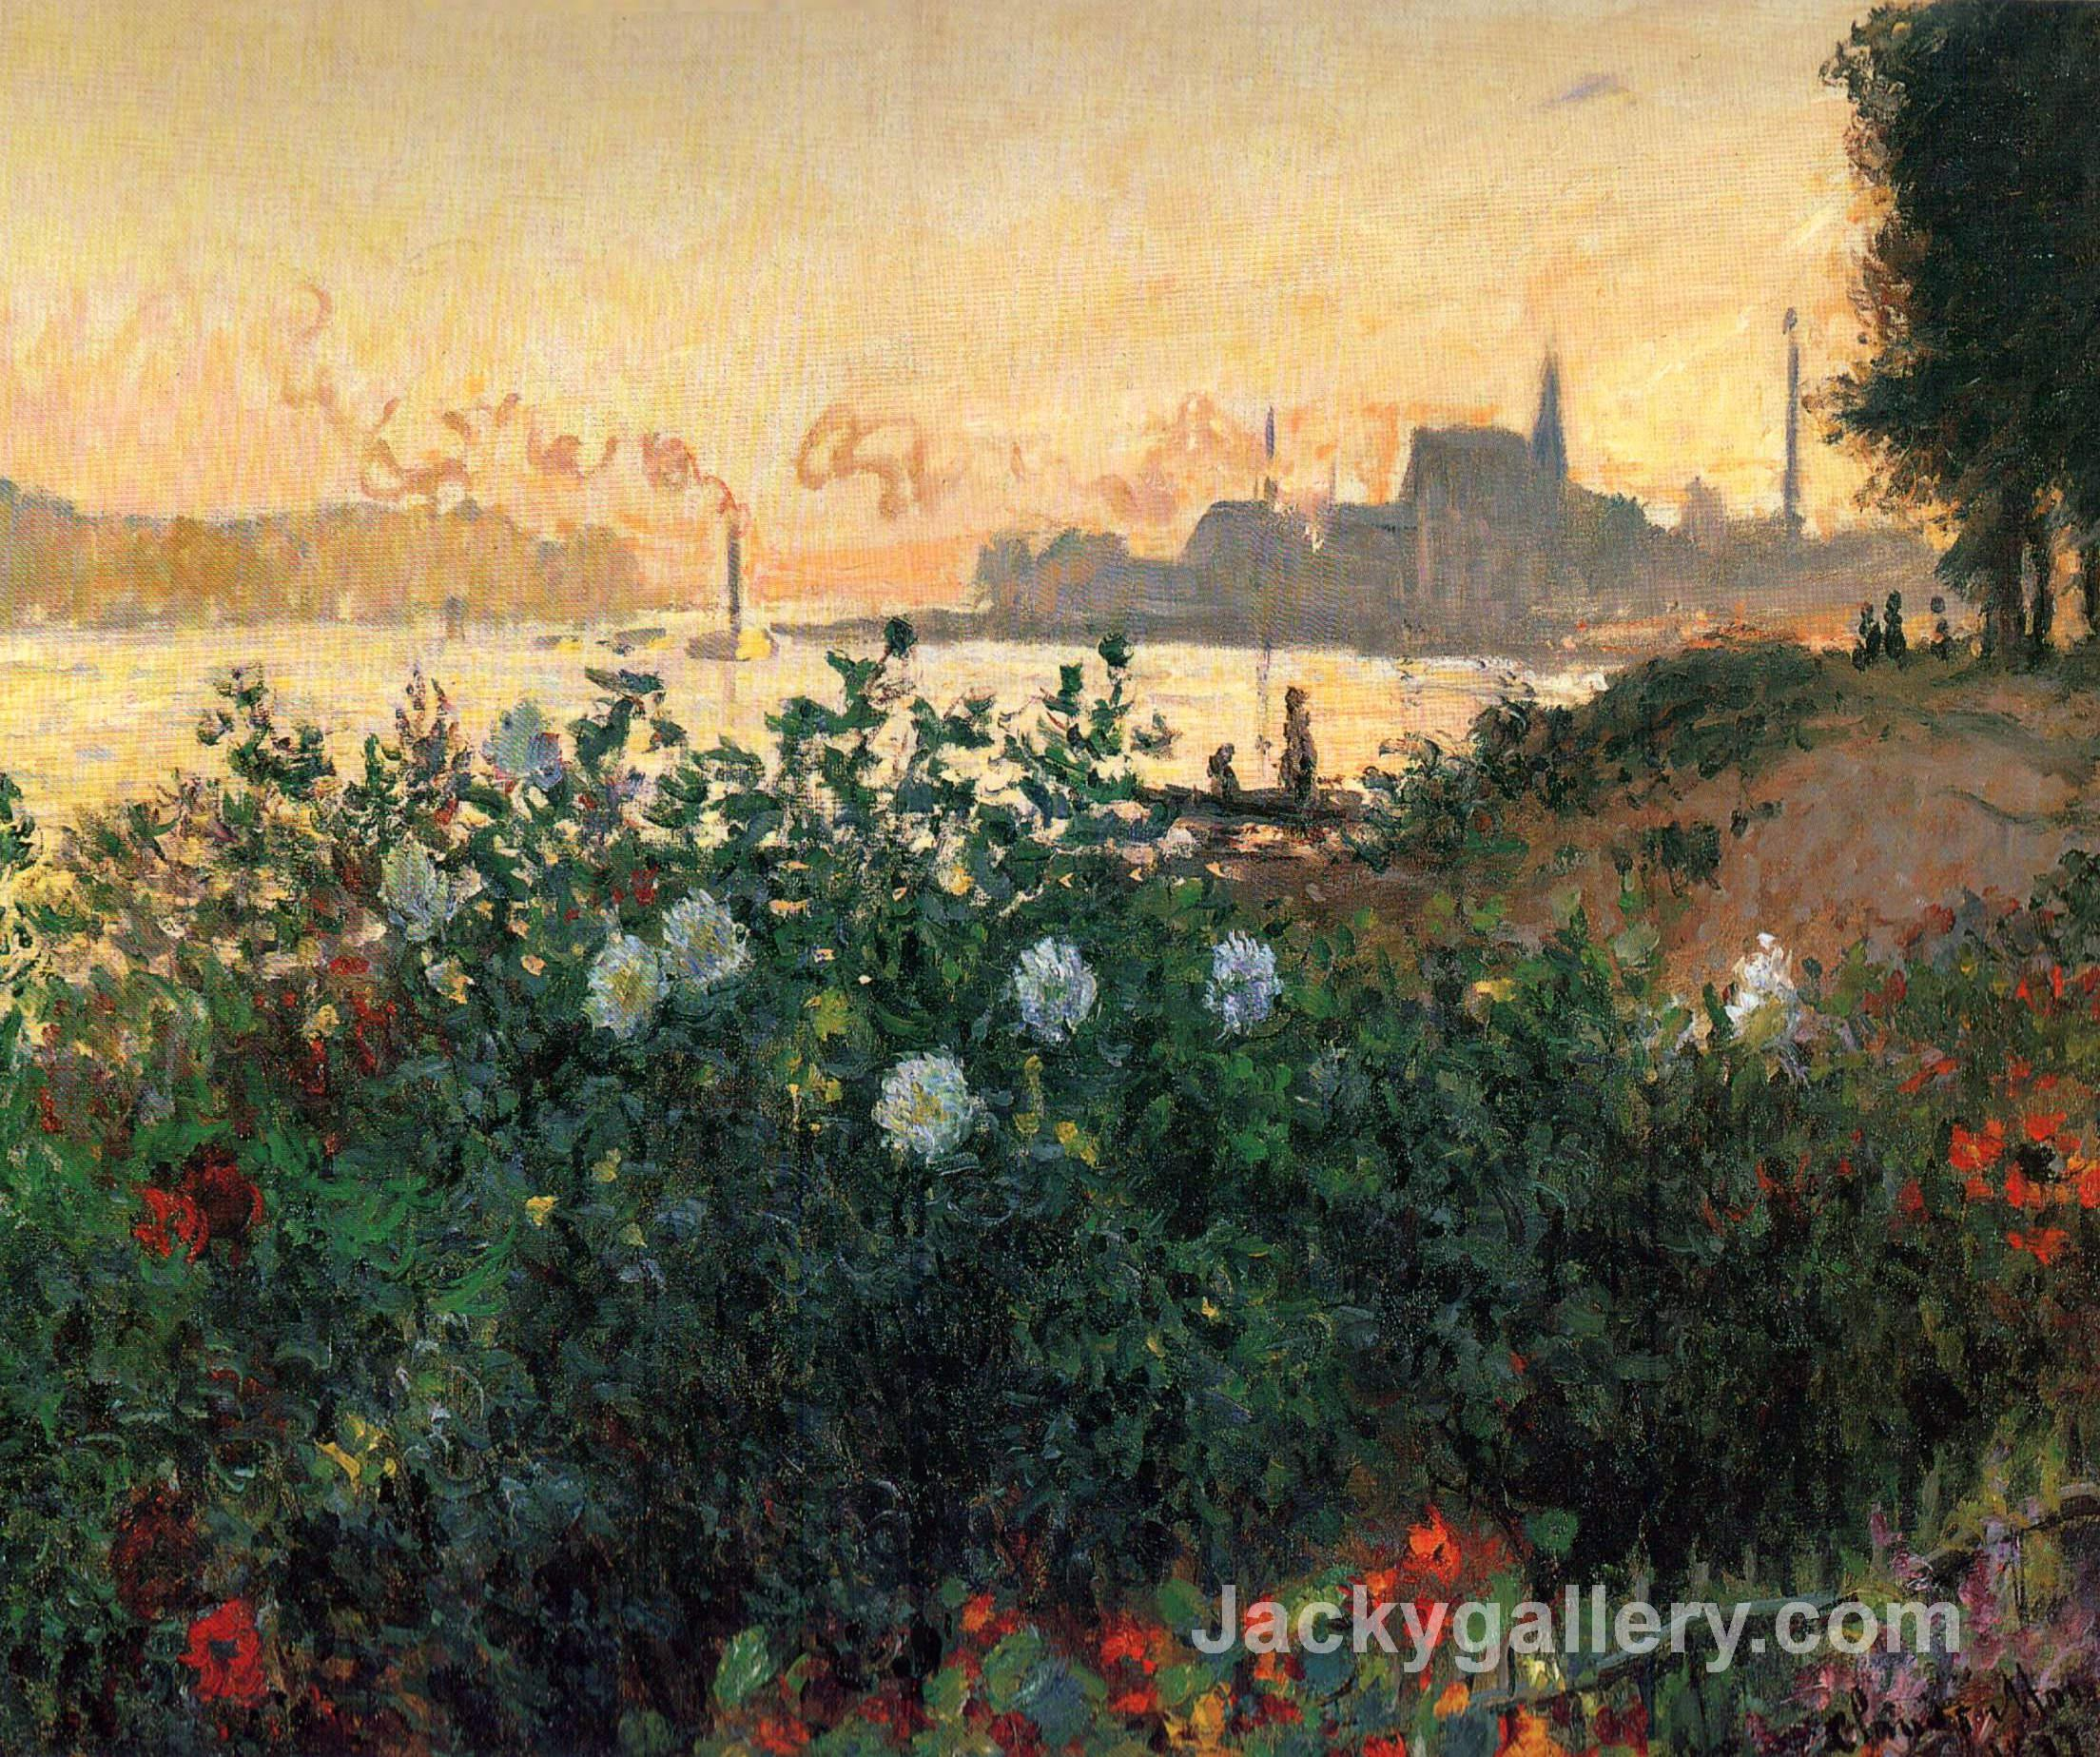 Argenteuil, Flowers by the Riverbank by Claude Monet paintings reproduction